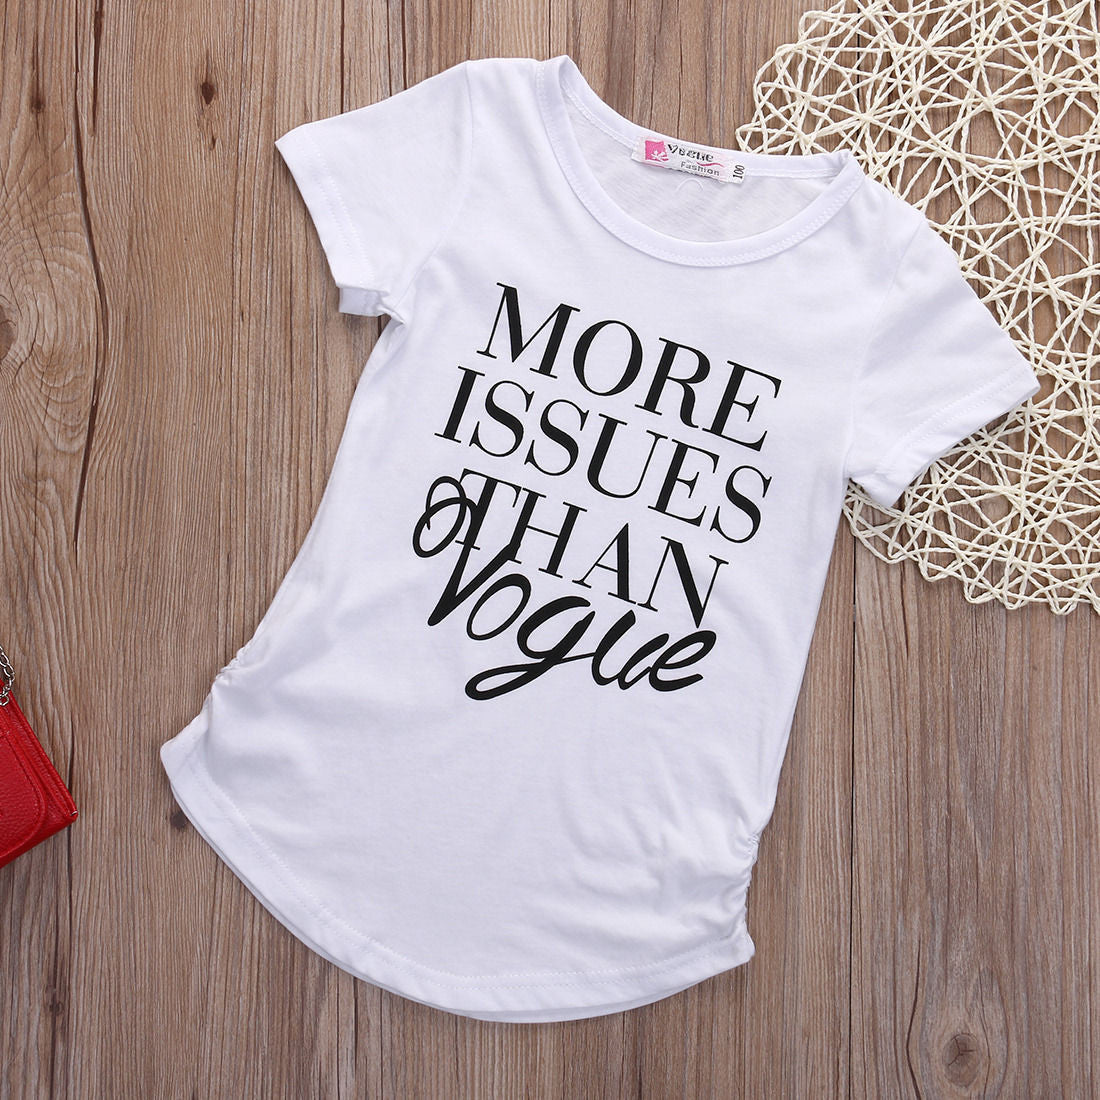 White / 3TNew Kids Baby Girls Summer Fashion Cotton Short sleeve T-shirt Tops Clothes